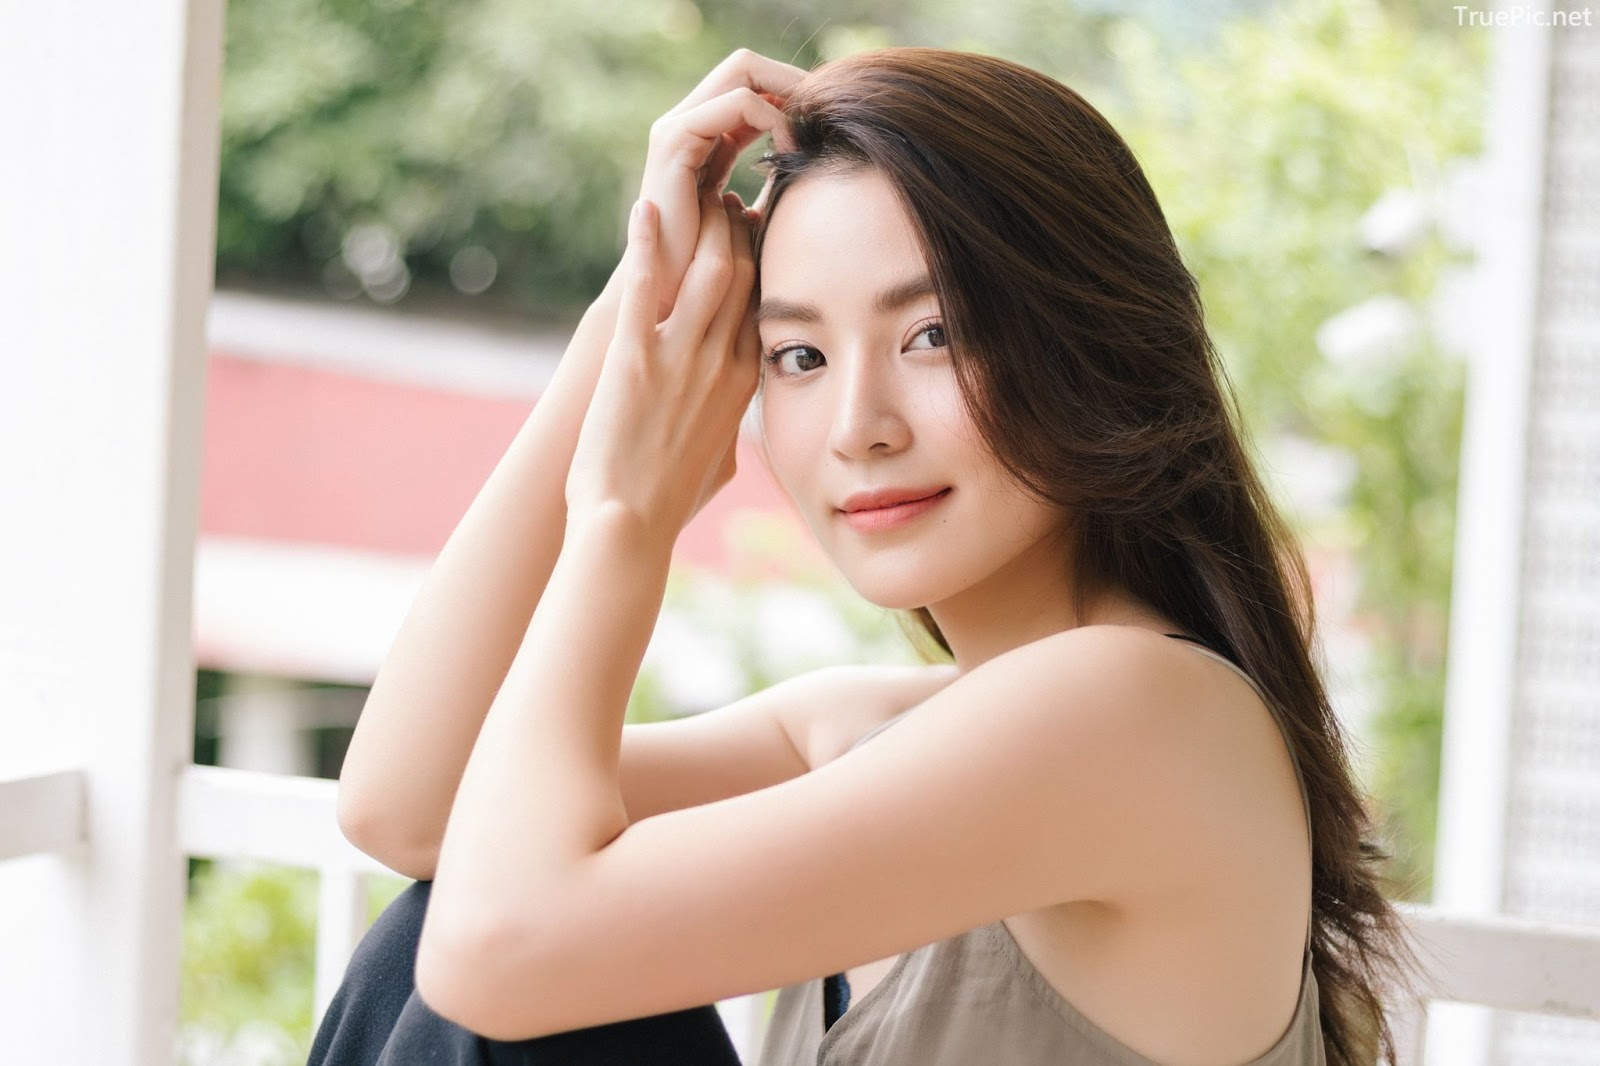 Beauty Thailand Kapook Phatchara so attractive with photo album Bloom with grace - Picture 9